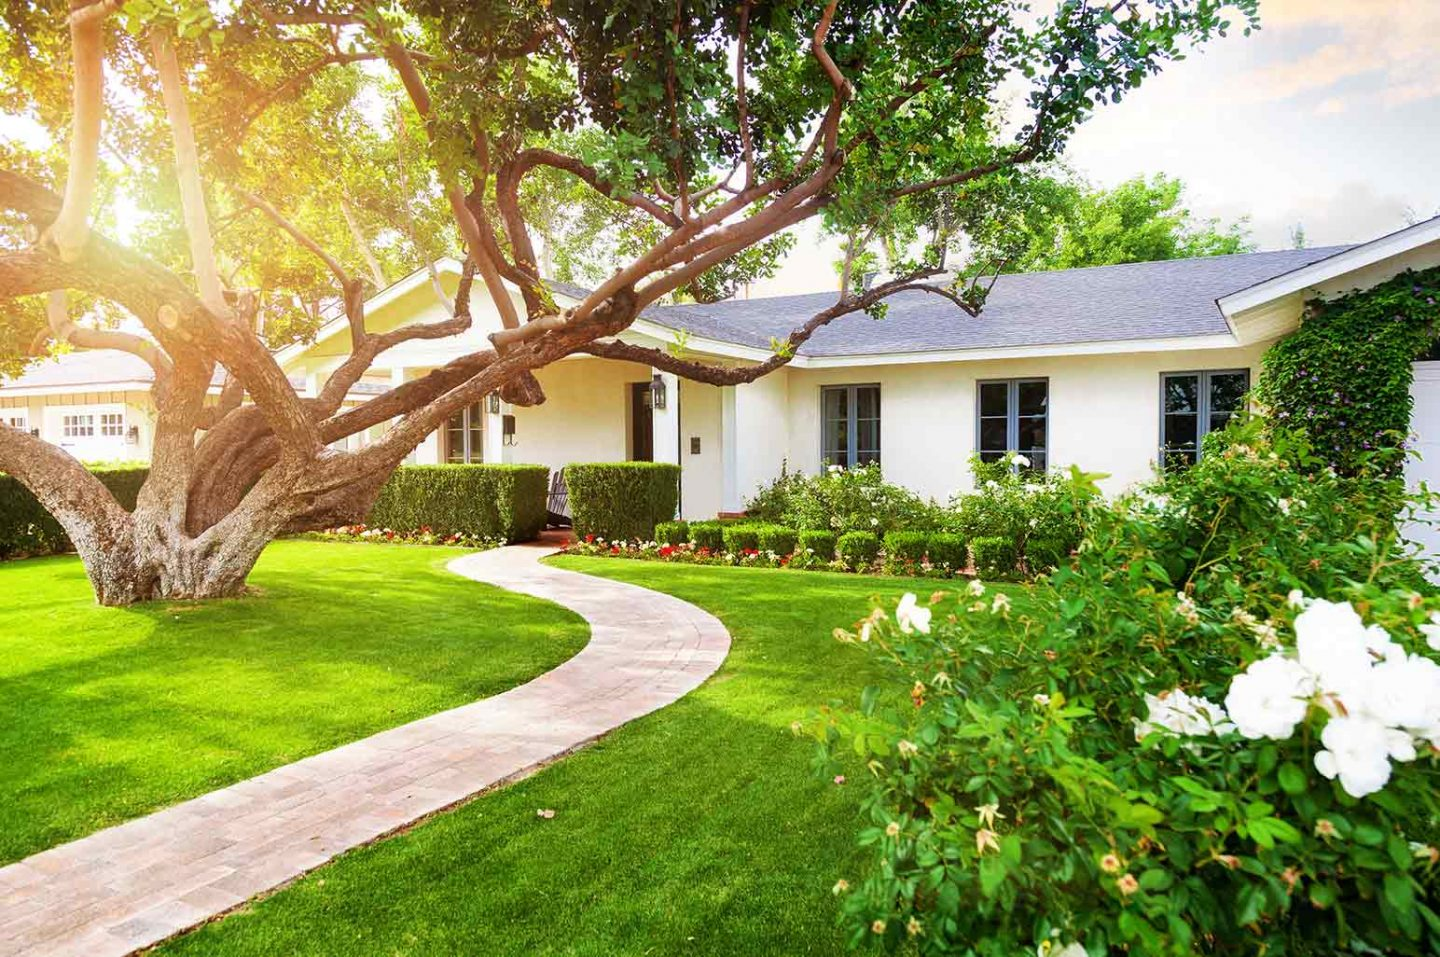 Getting Your Yard Ready for Summer